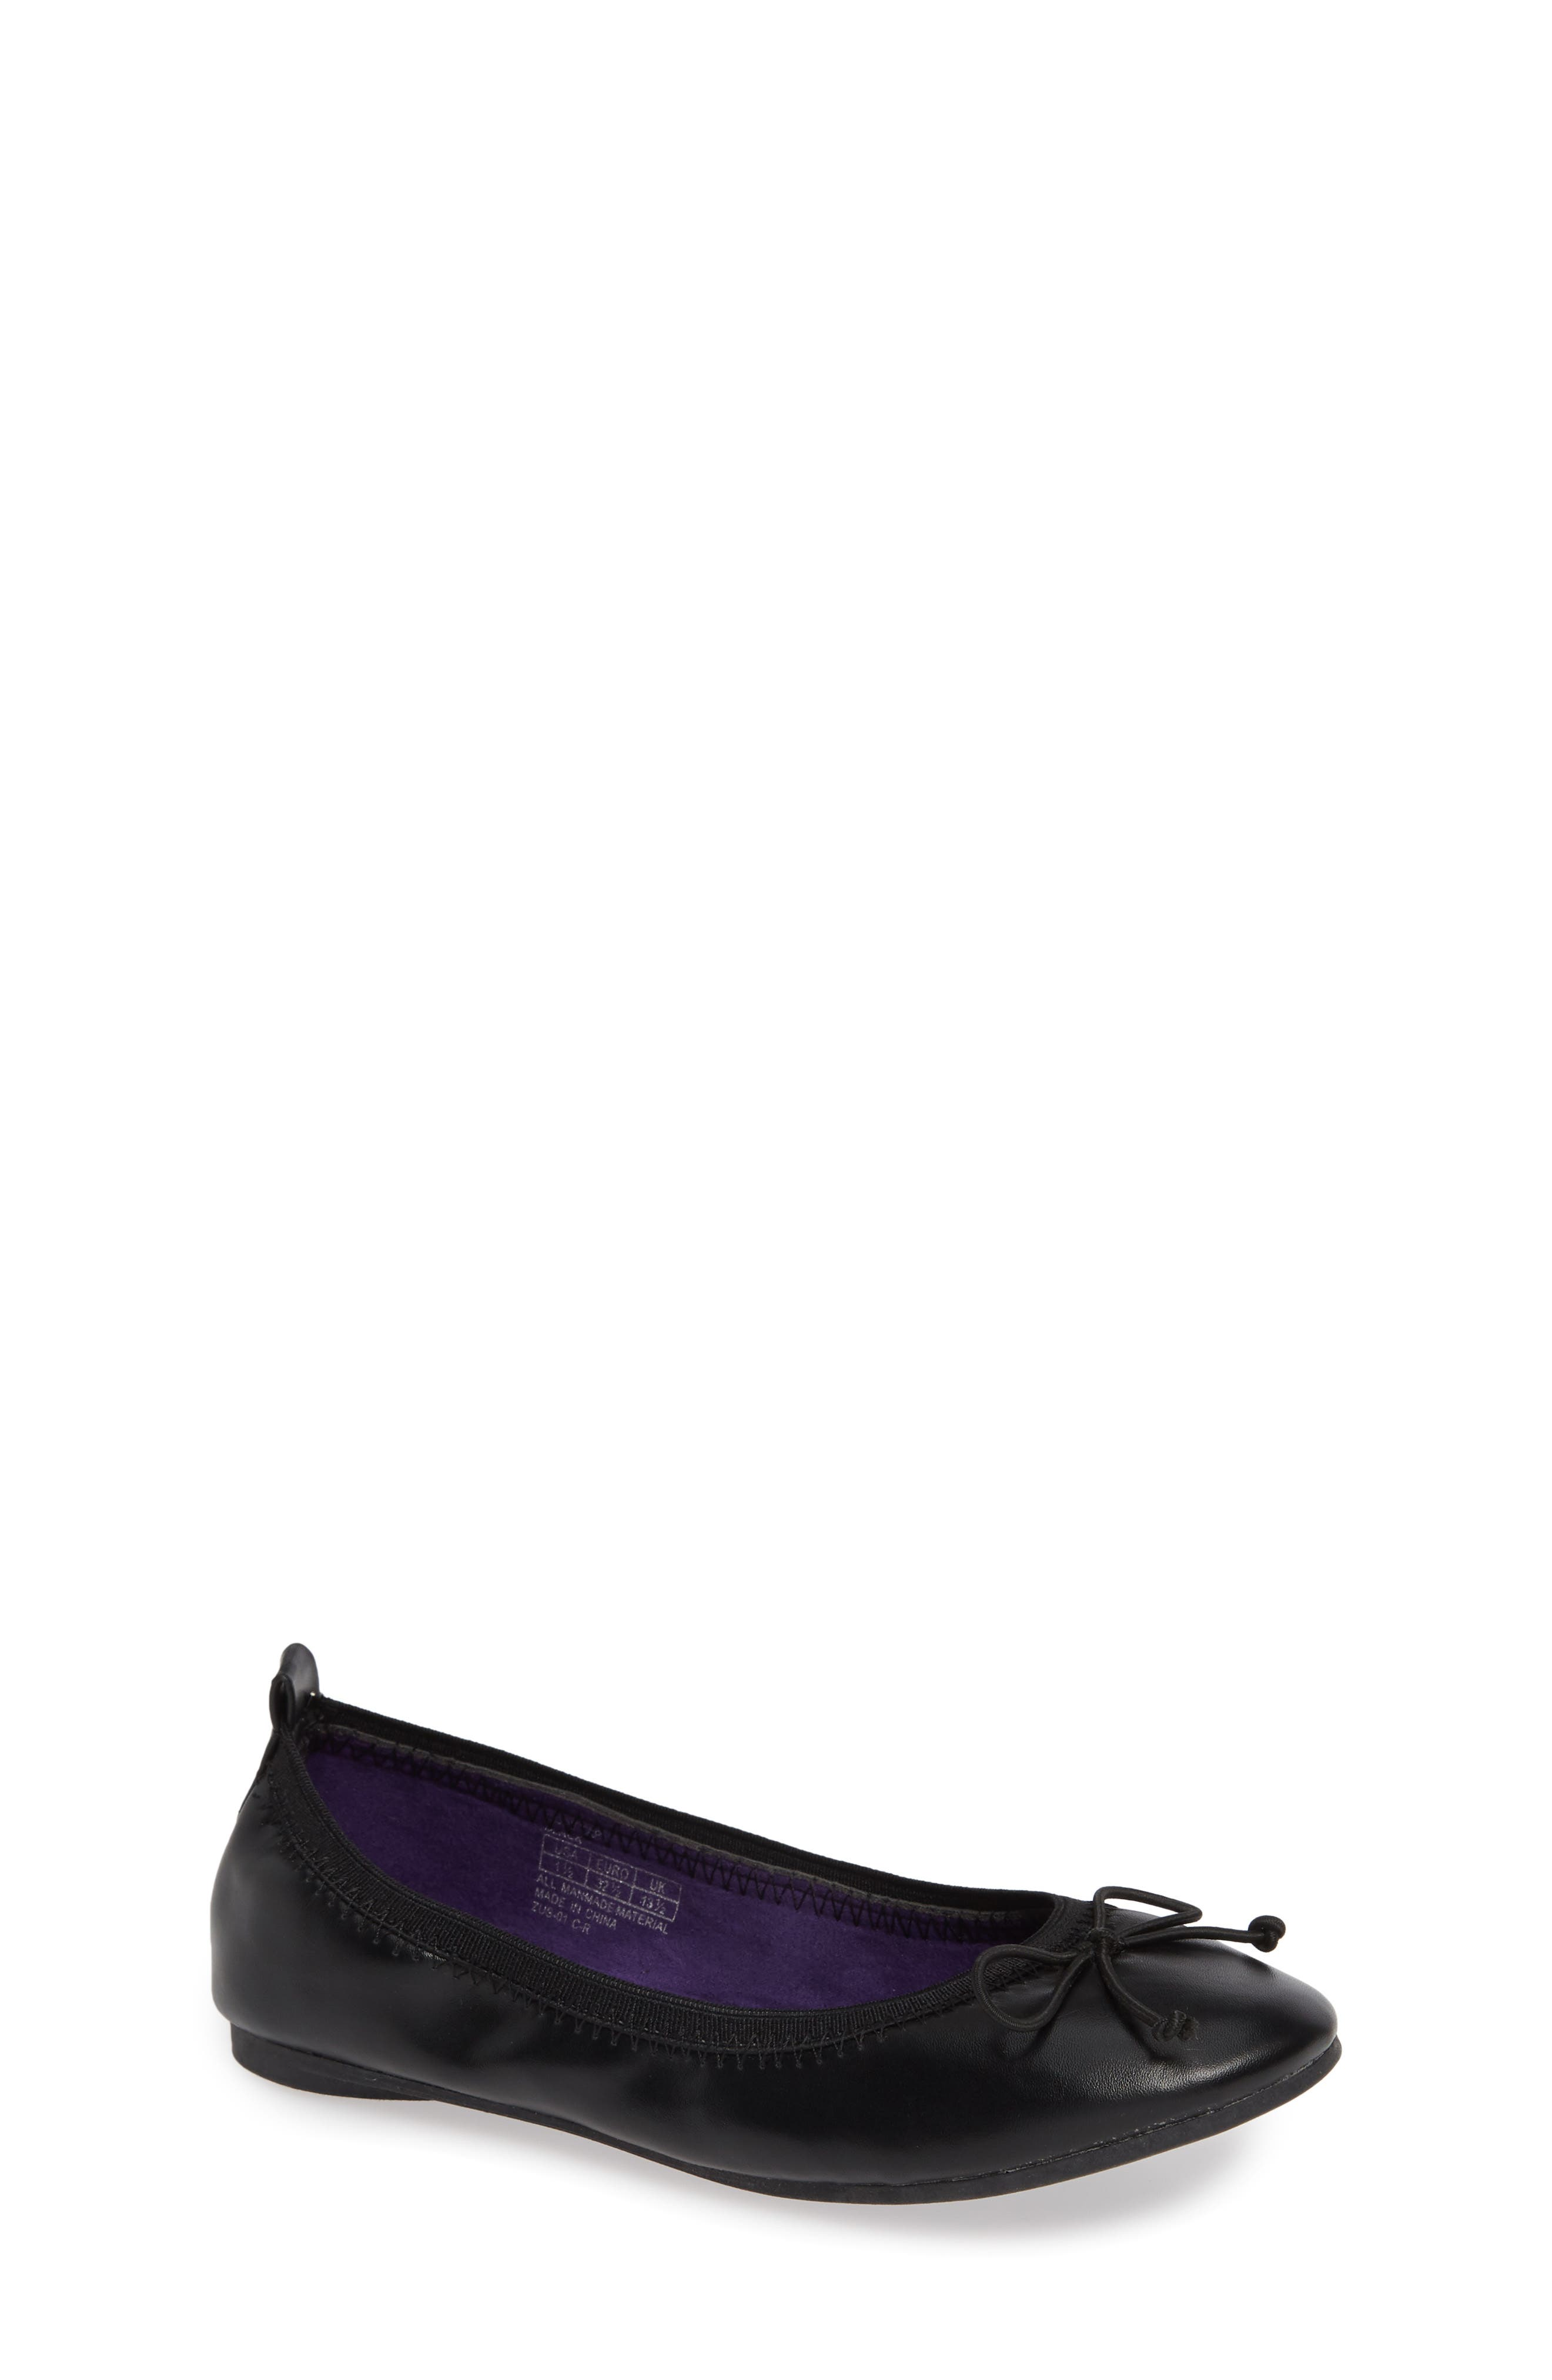 Copy Tap Ballet Flat,                         Main,                         color, BLACK